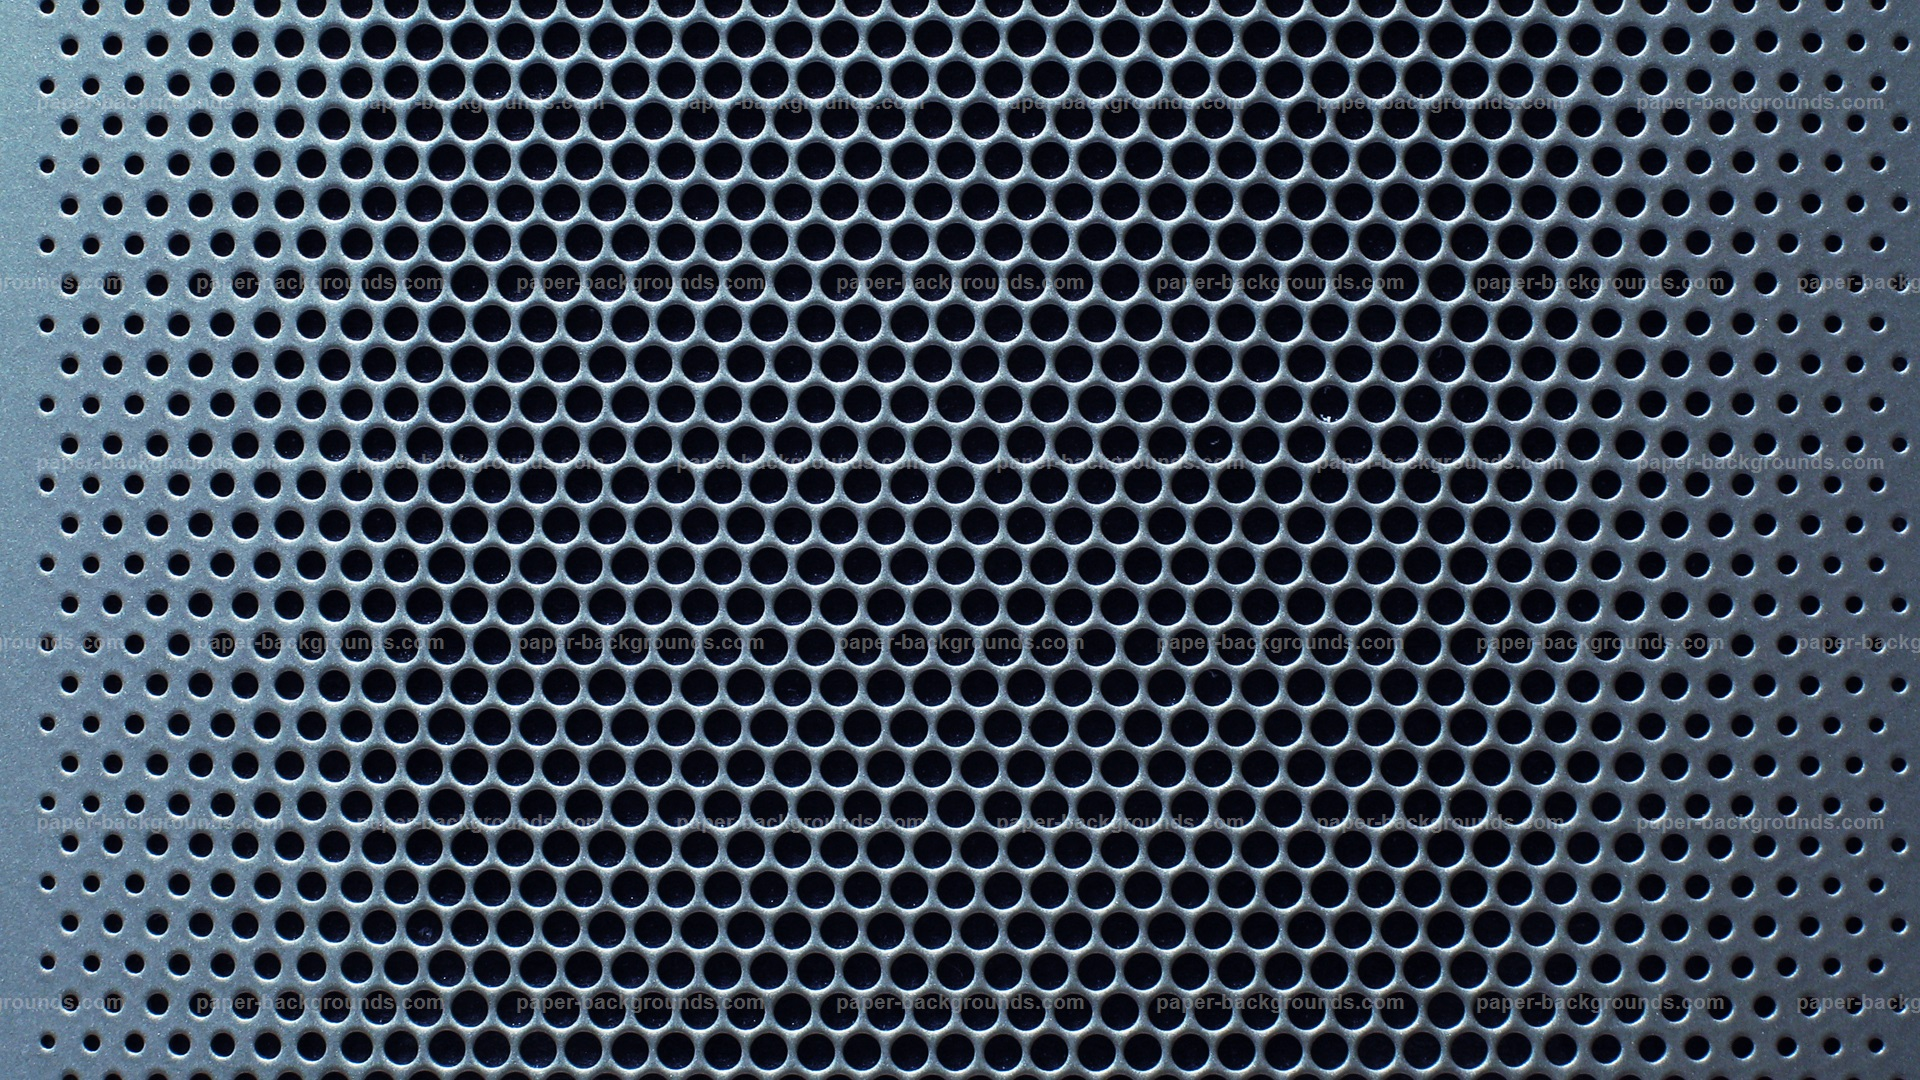 Metal Grid Comb Texture HD